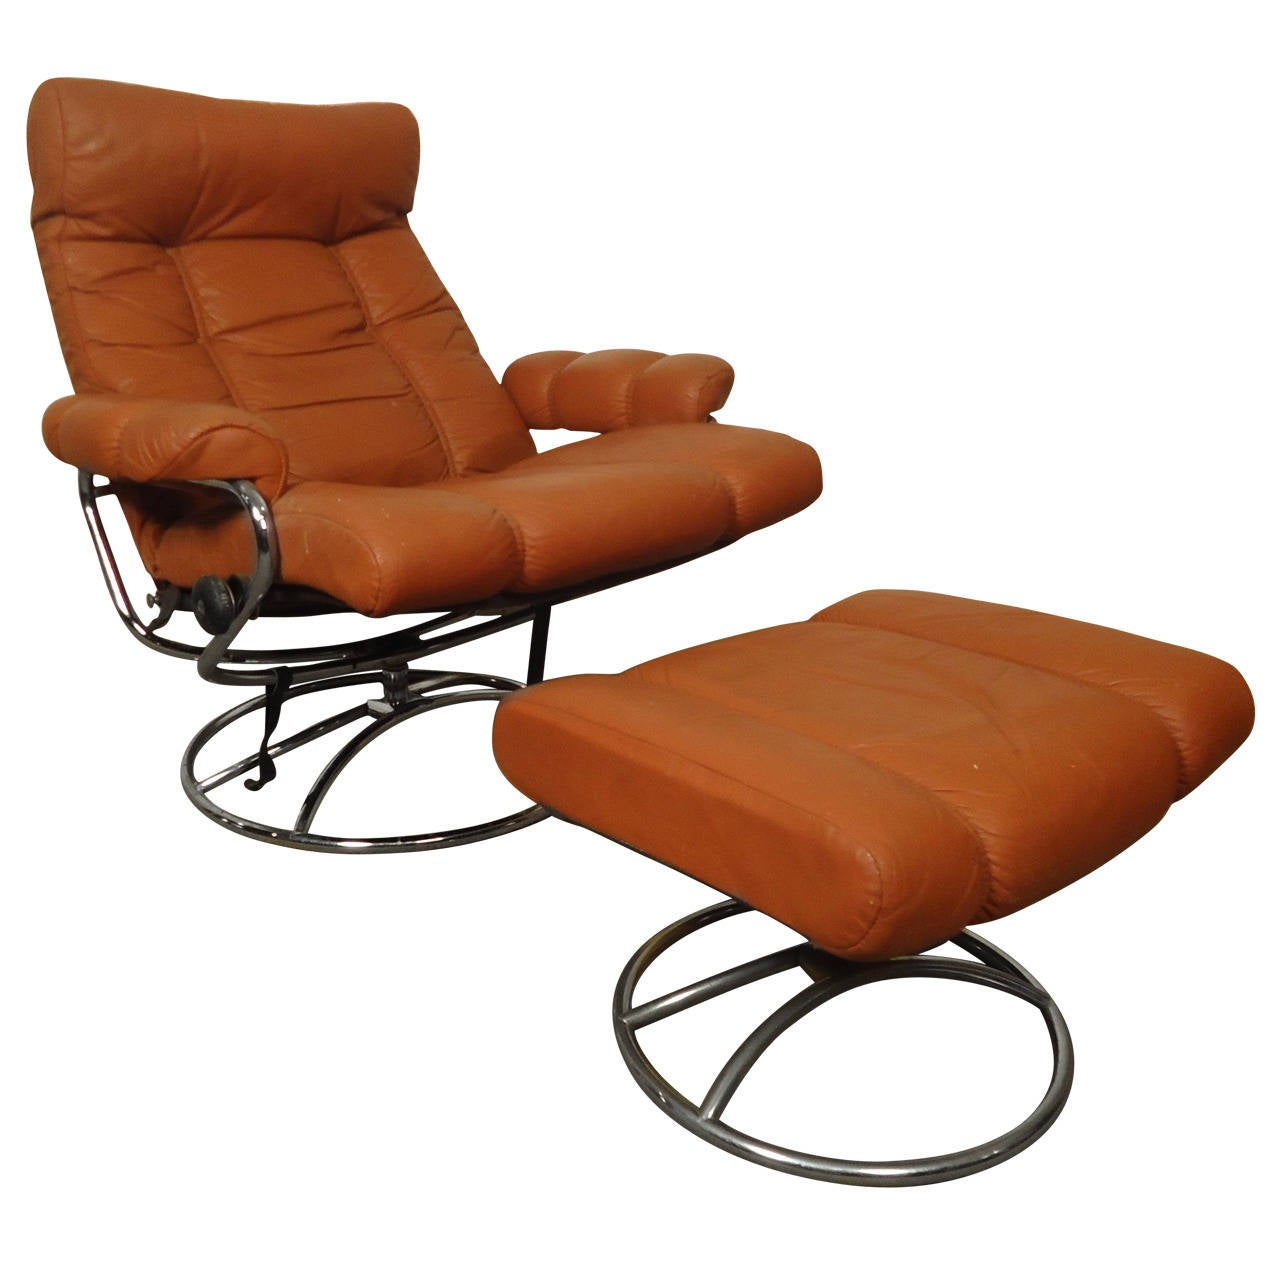 Mid Century Reclining Chair And Ottoman By Ekornes Stressless 1